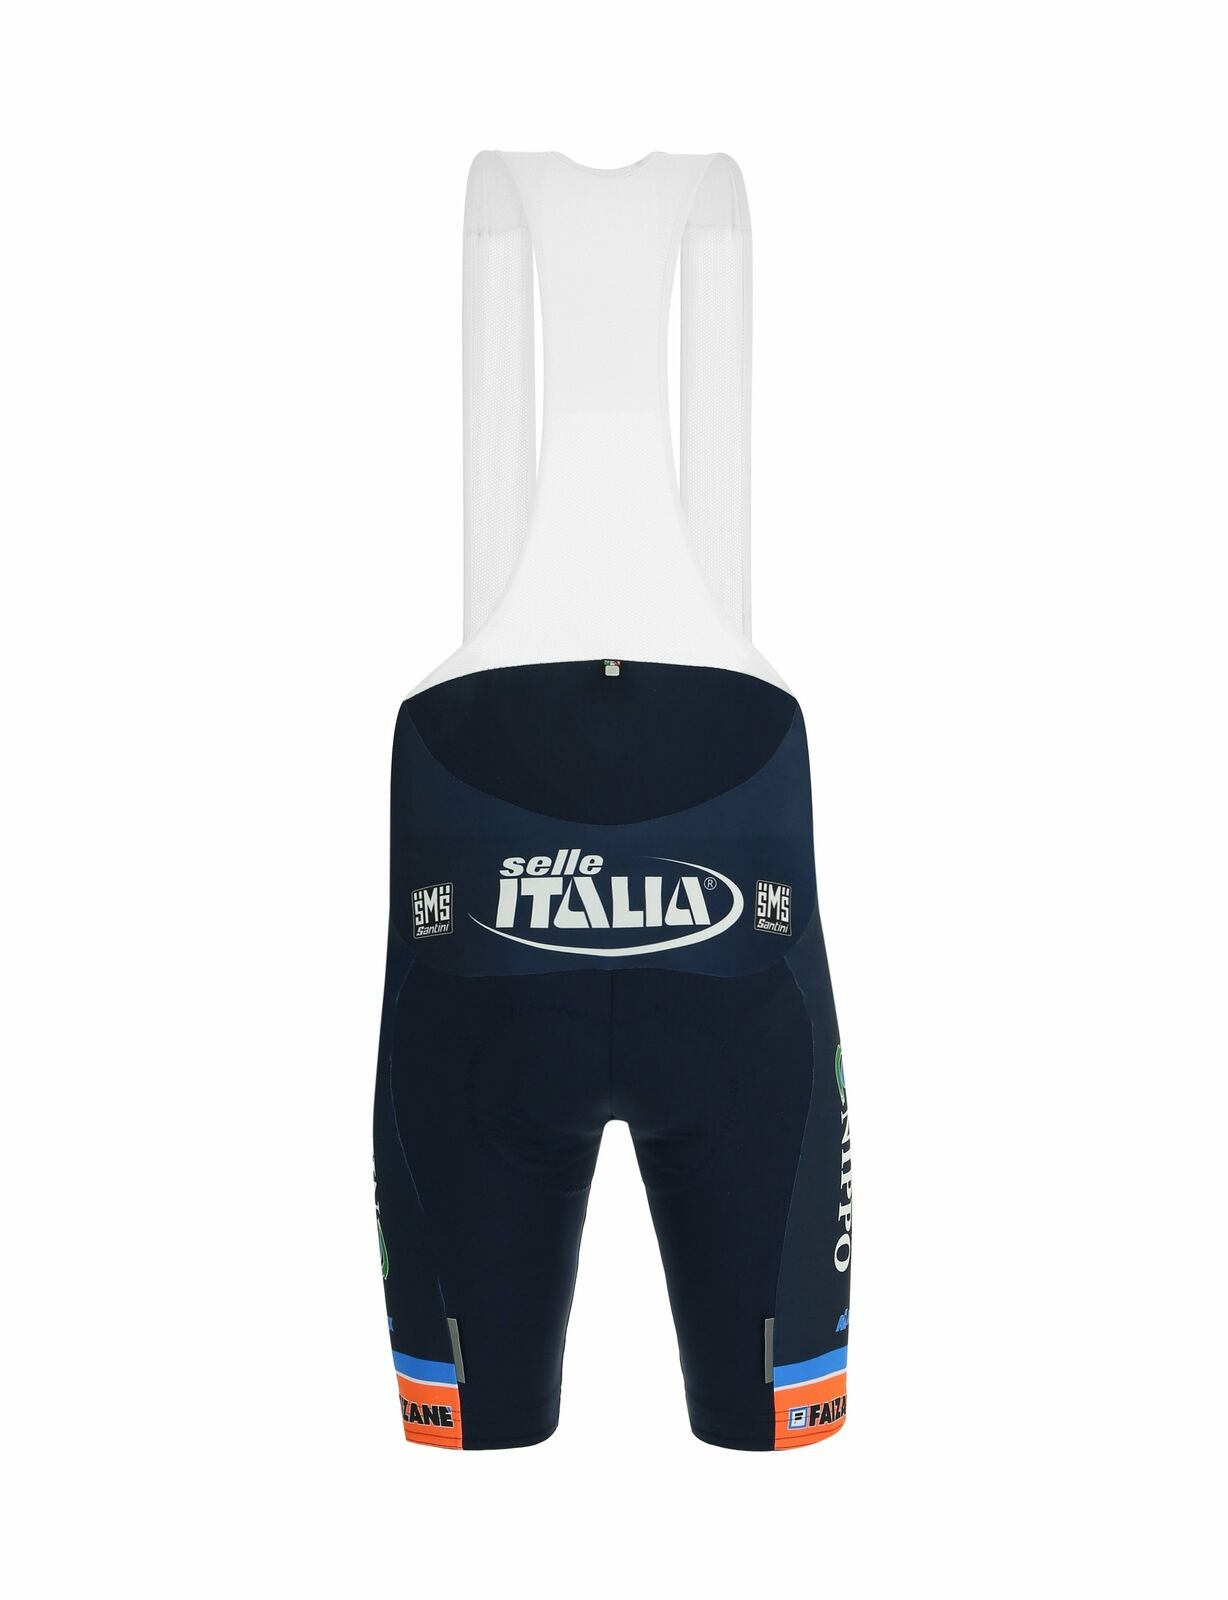 2019 Nippo Fantini Team Cycling Bib Shorts with with with Max Pad by Santini d9363b